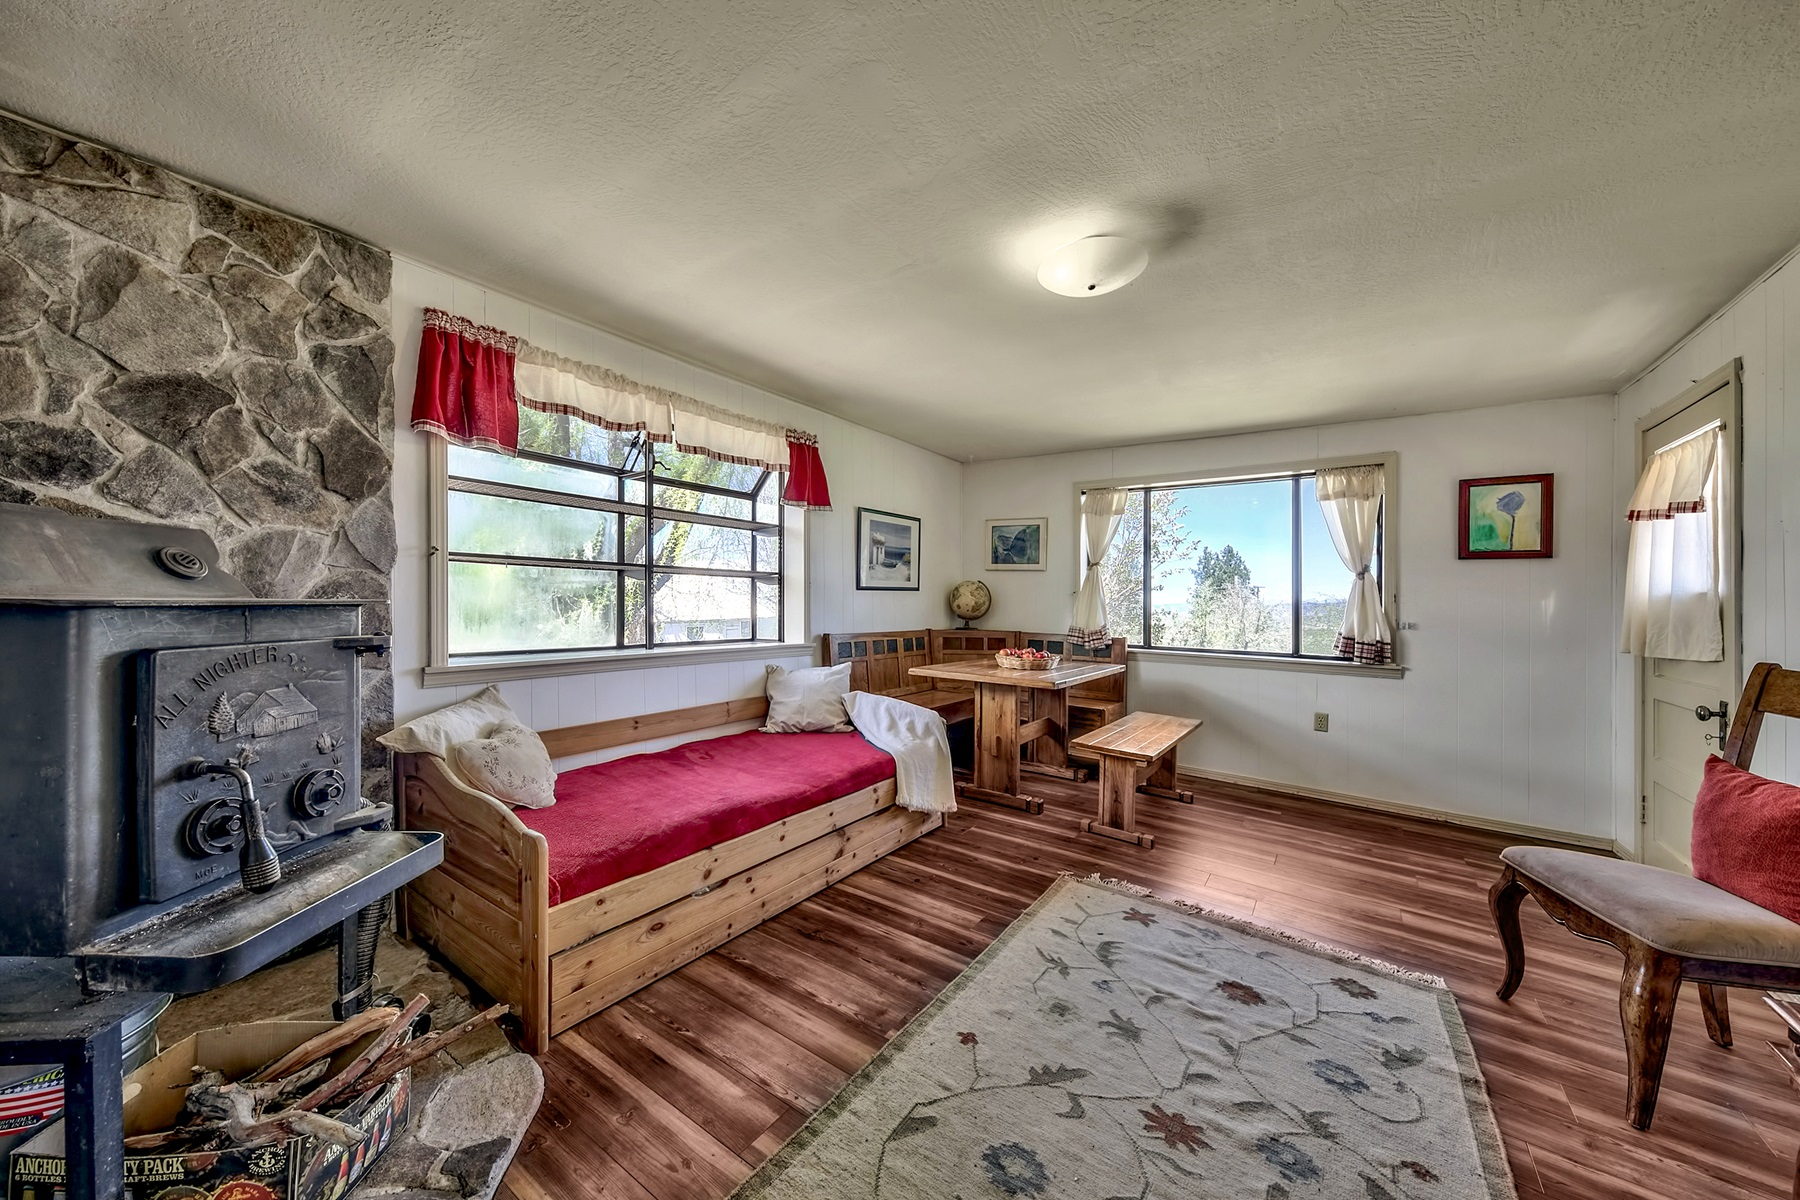 Additional photo for property listing at 202-206 West Willow Street, Sierraville, CA 202-206 West Willow Street Sierraville, California 96126 United States